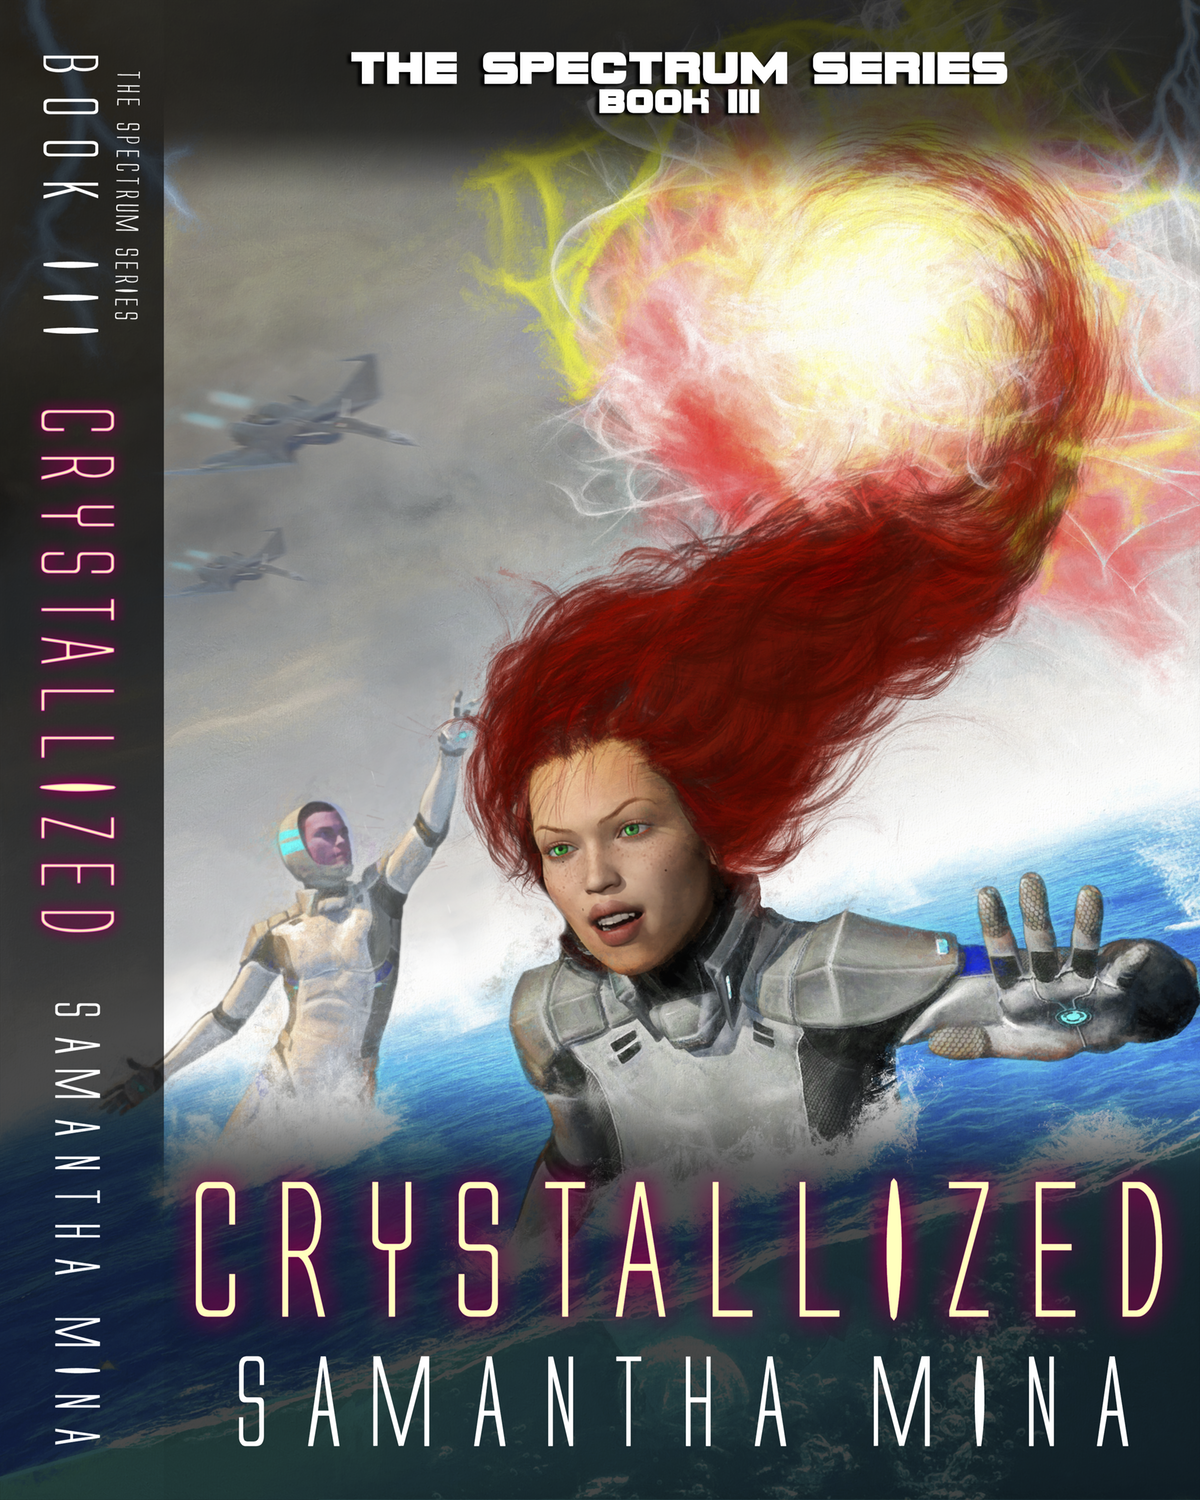 Book Cover & Spine for Book III of the Spectrum Series: CRYSTALLIZED